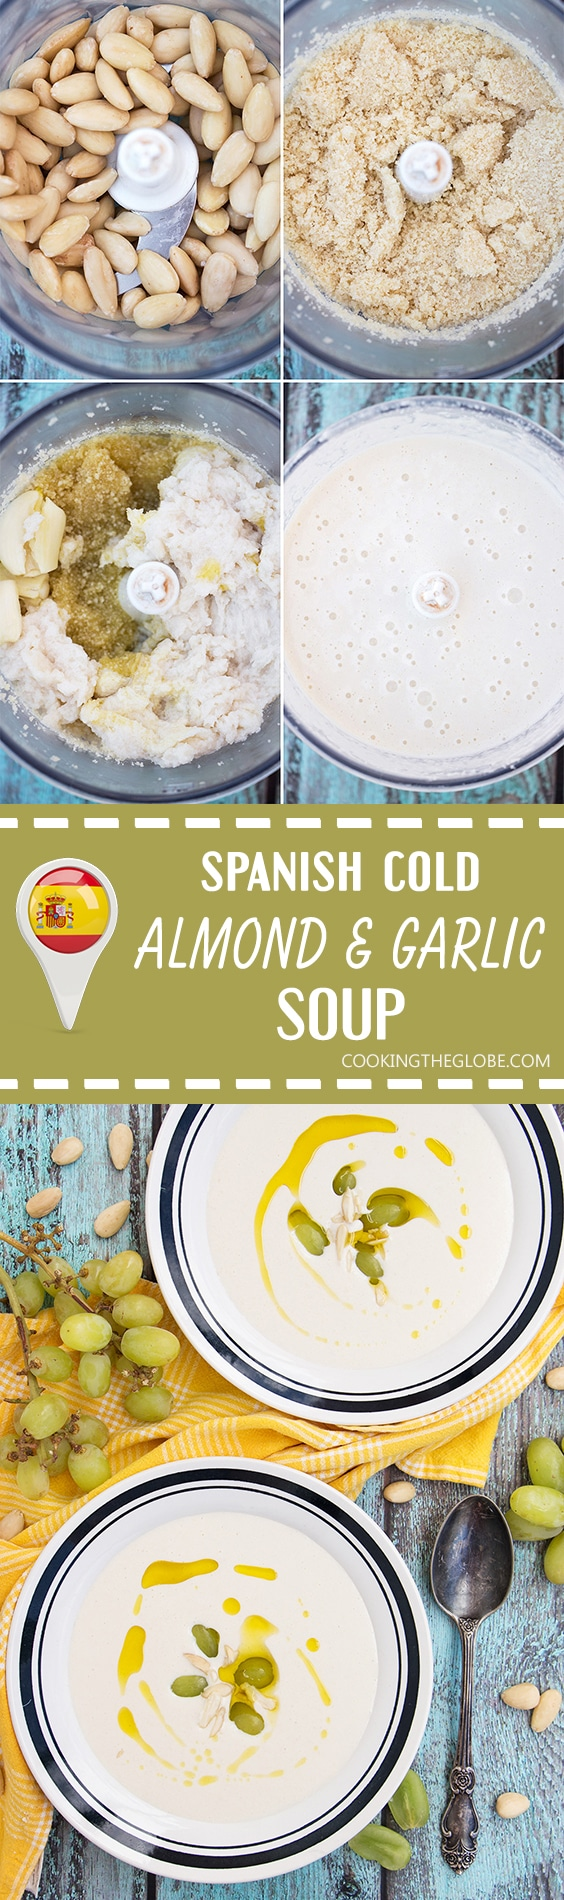 Ajo Blanco is your answer to the summer heat! Almonds, garlic, bread, olive oil, and grapes combined together to create this chilled Spanish soup! | cookingtheglobe.com